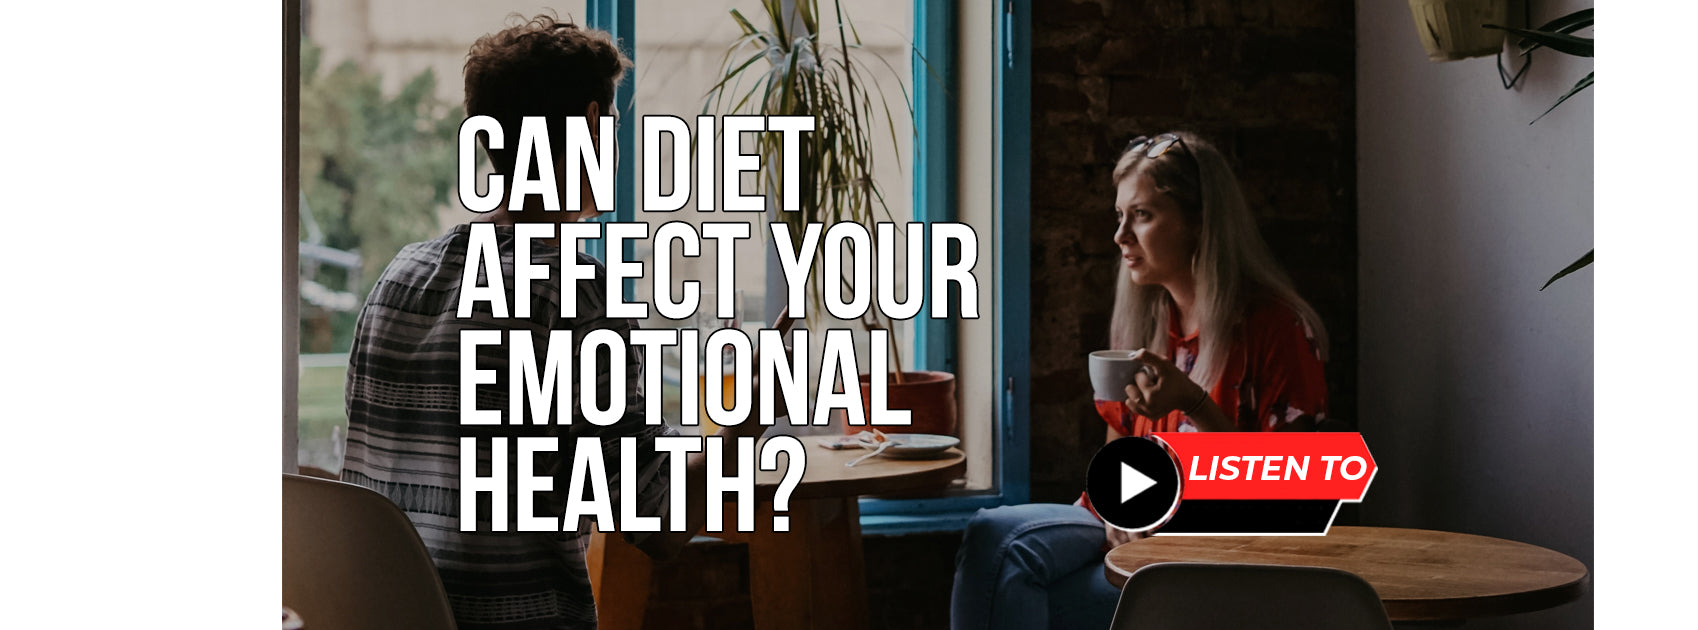 Can Diet Affect Your Emotional Health?